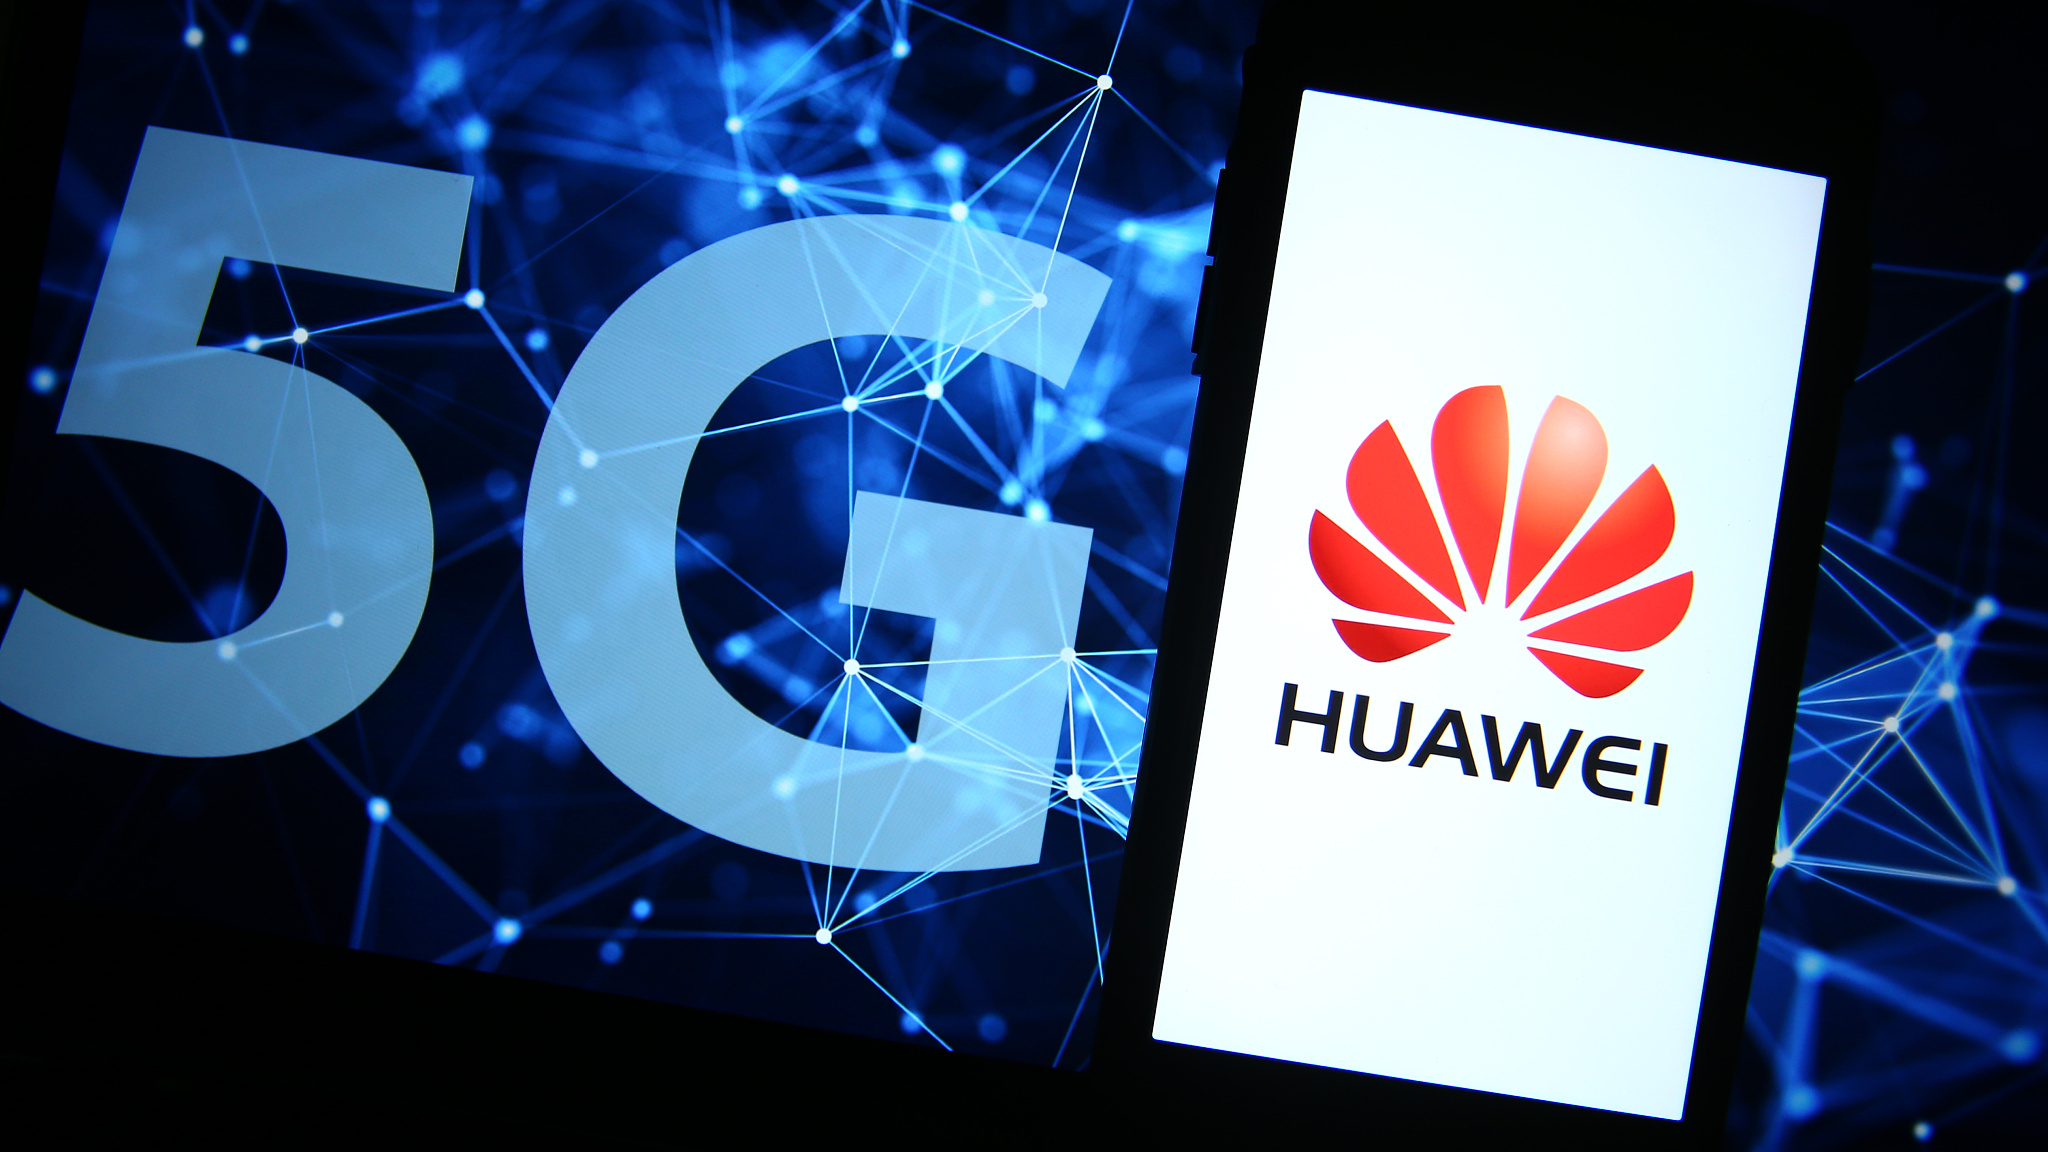 Germany gives Huawei conditional 'green light' in 5G